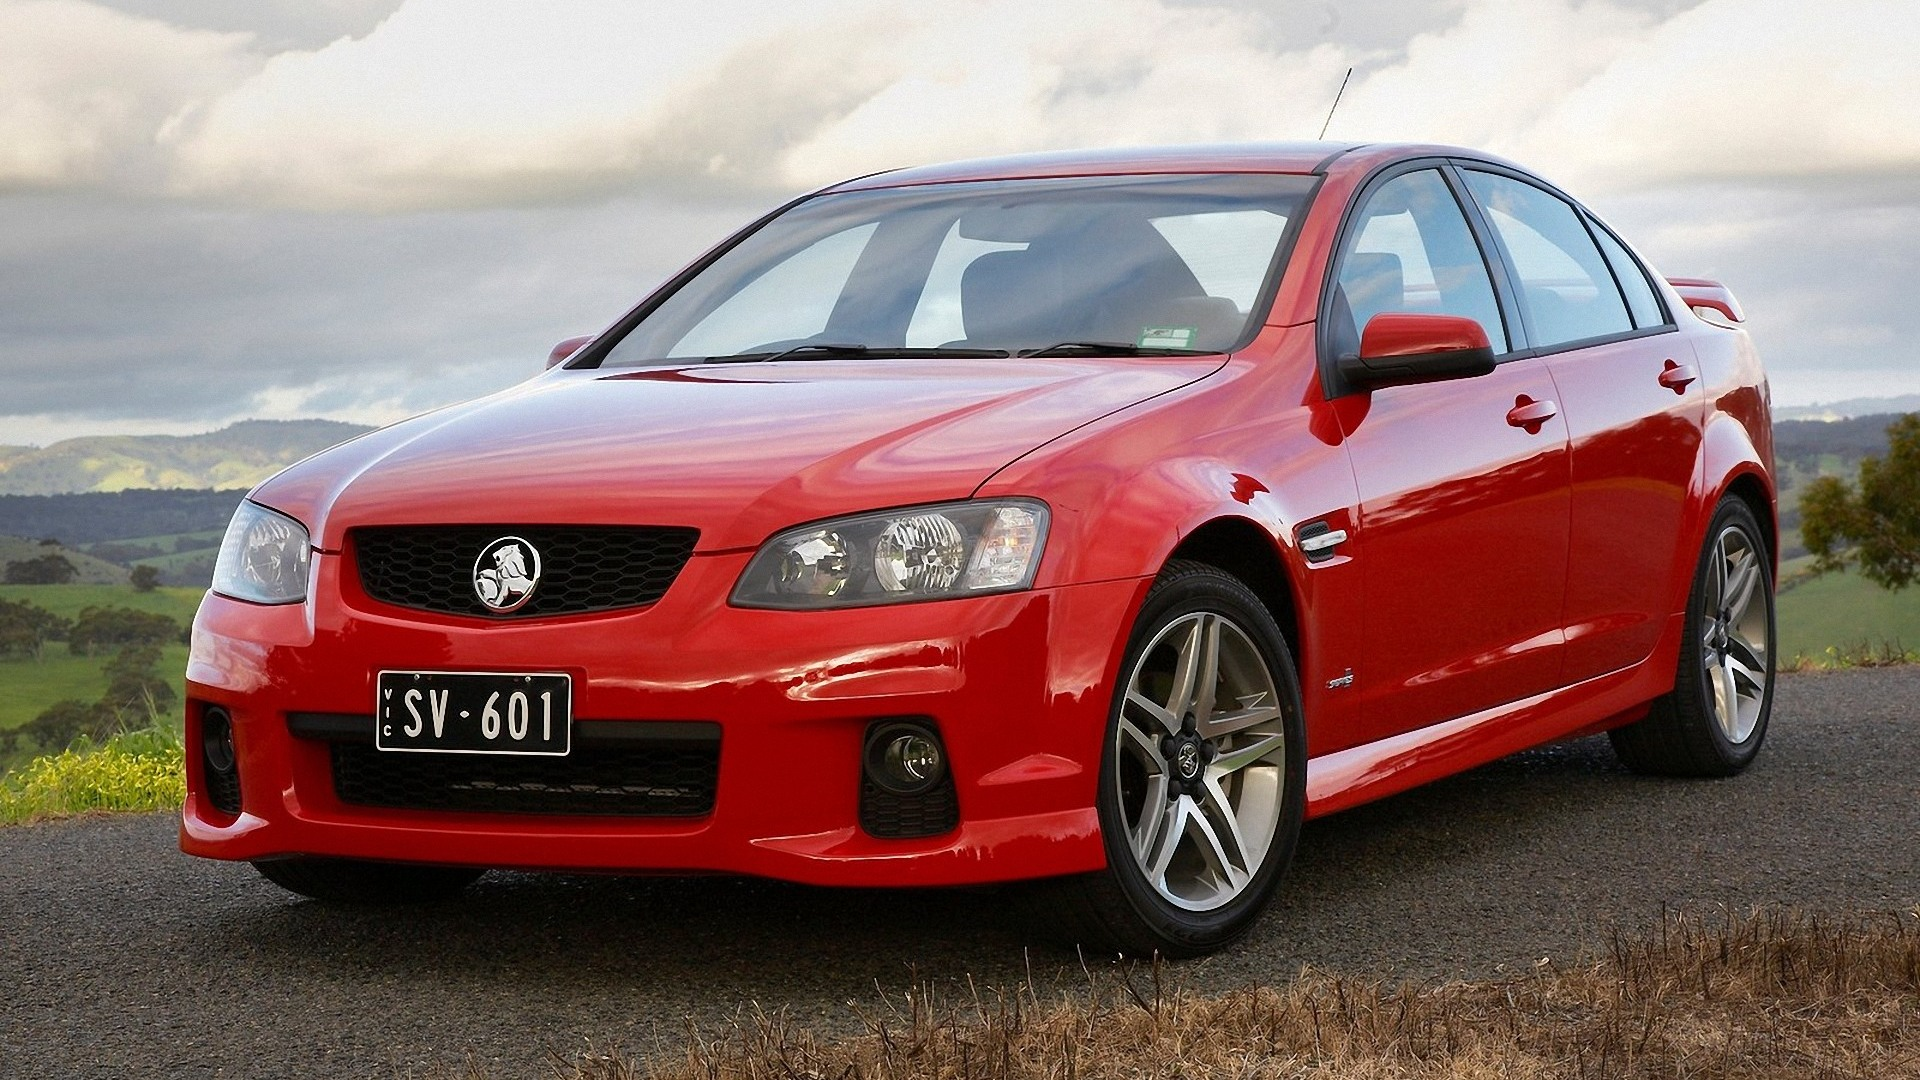 2011 Holden Ve Ii Commodore Sportwagon Calais V Car